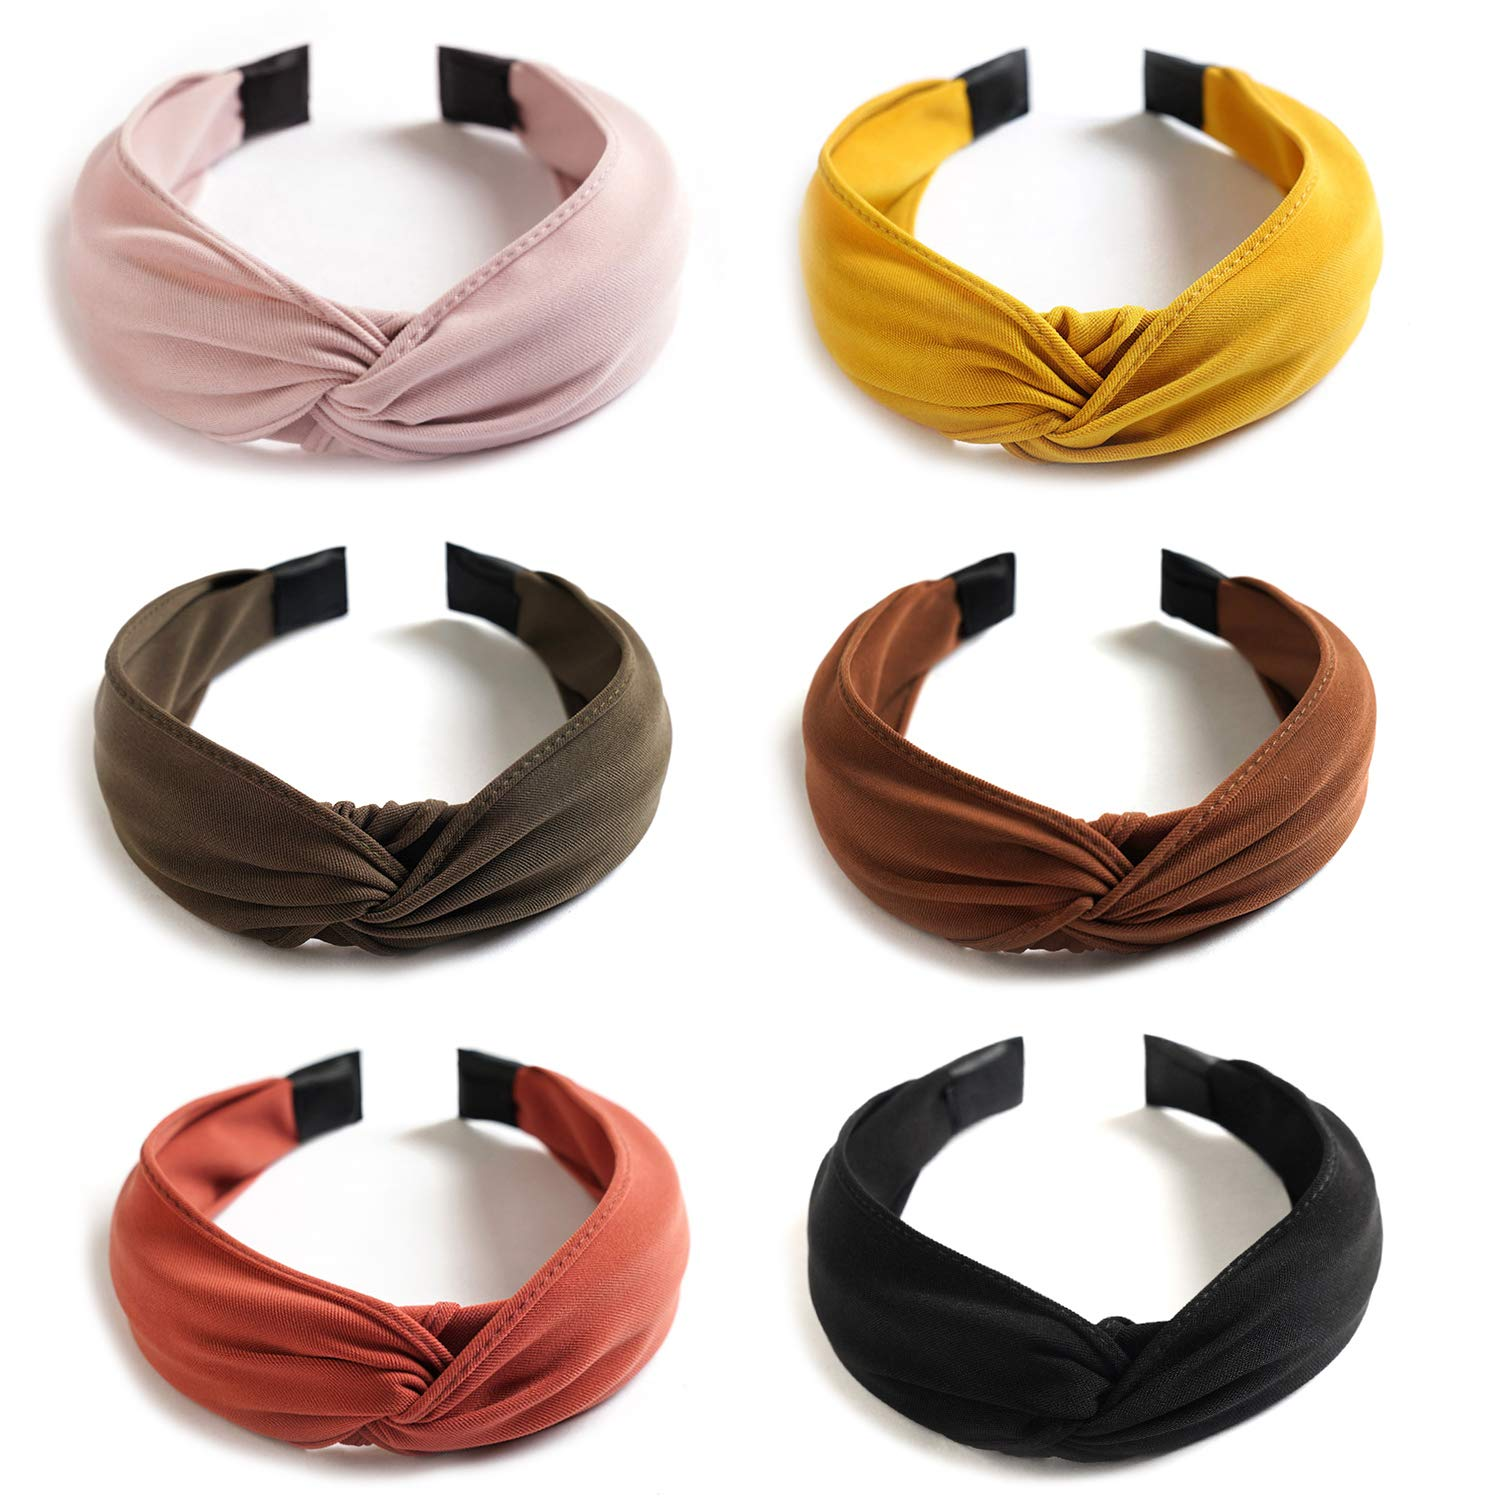 6 Pack Wide Plain Headbands,Unime Twist Knot Turban Headband Yoga Hair Band Fashion Elastic Hair Accessories for Women and Girls,Children 6 Colors by UNIME